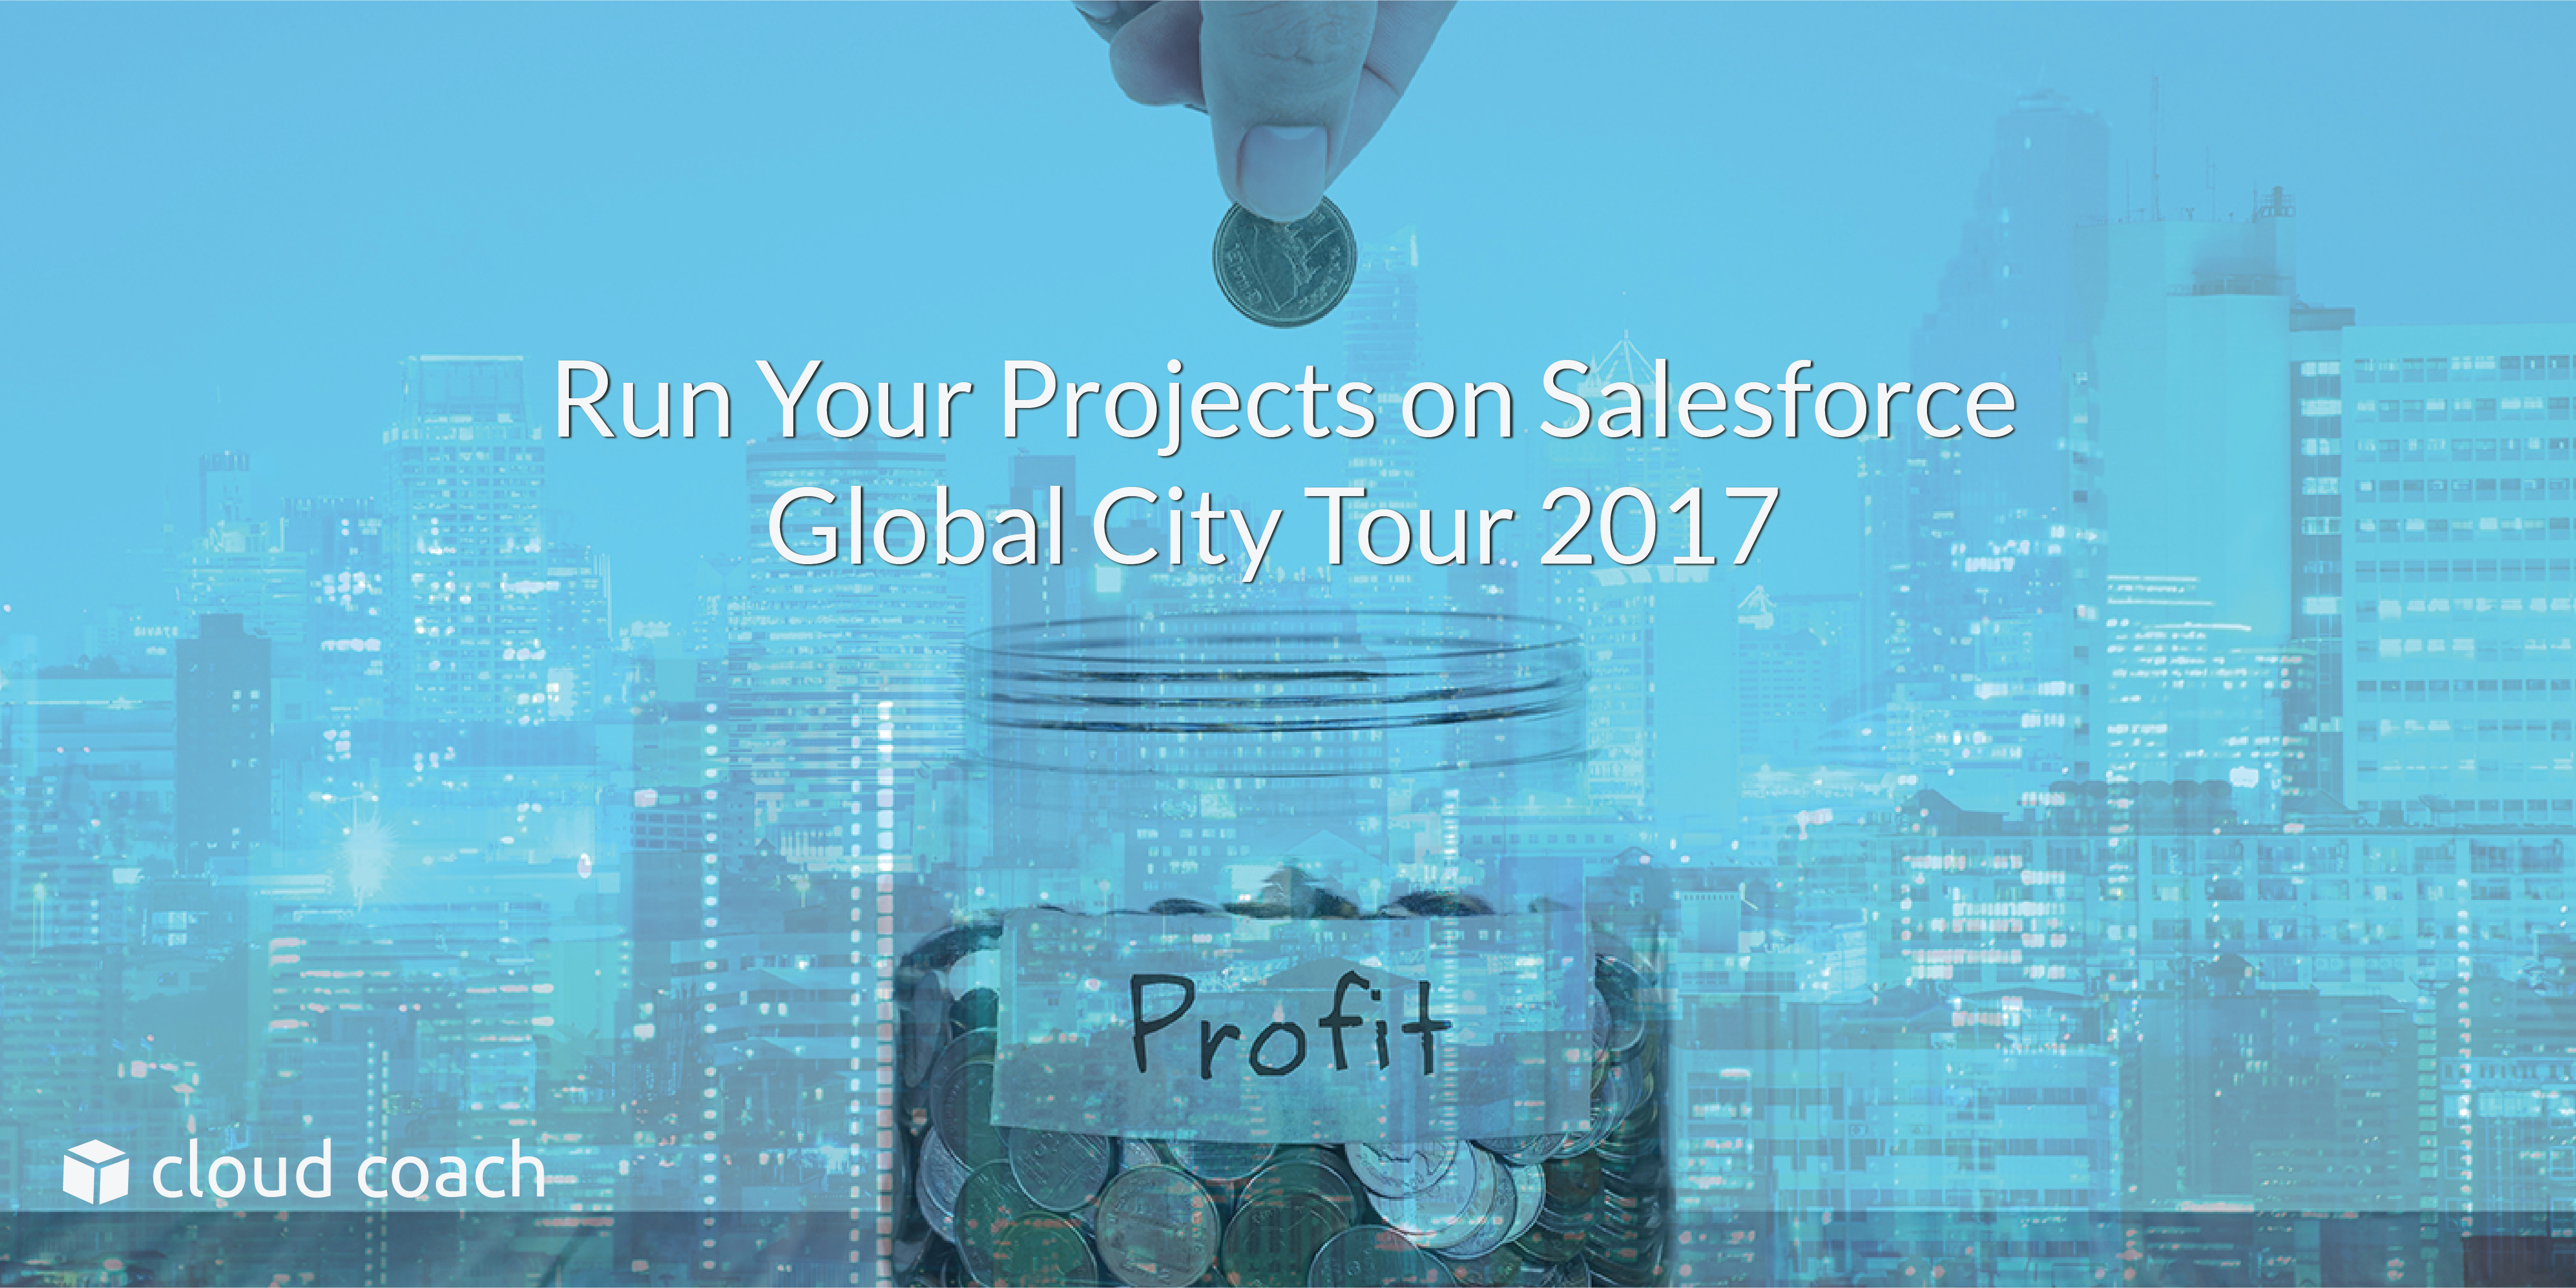 Run Your Projects on Salesforce - Chicago